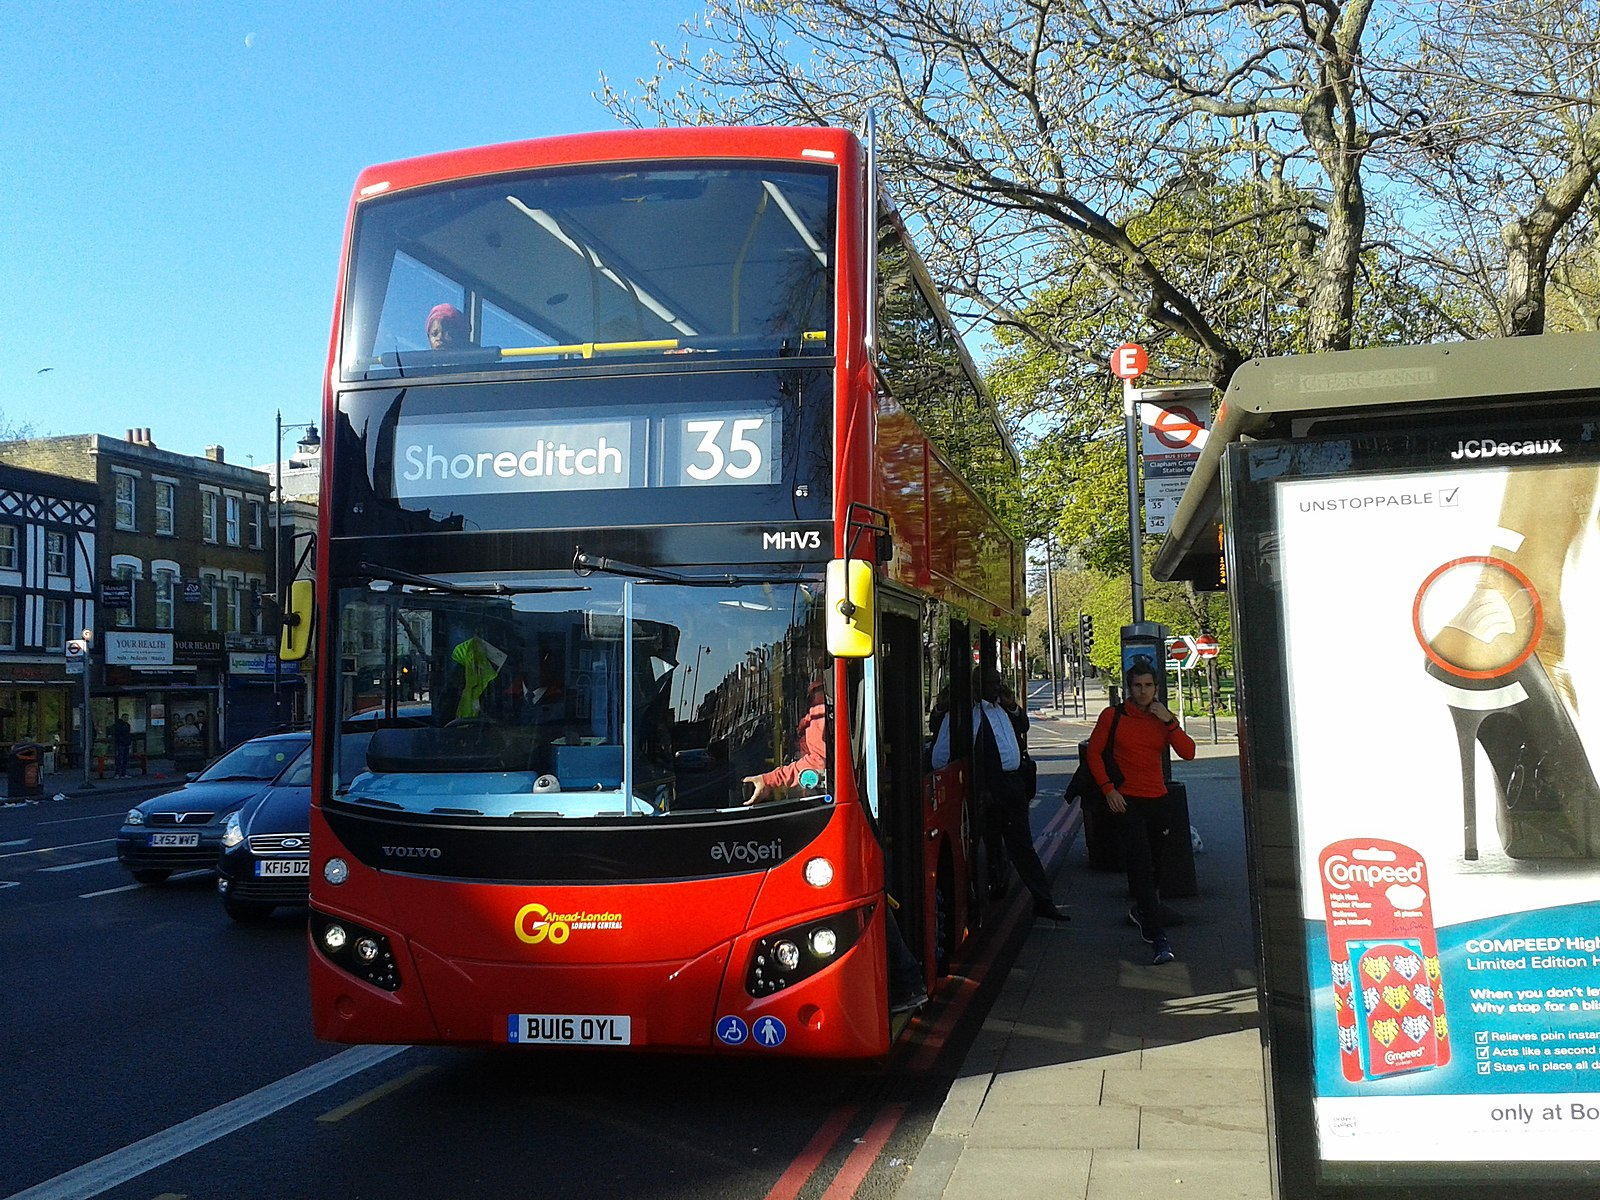 #AYearOfBuses 335: Clapham Junction – Shoreditch